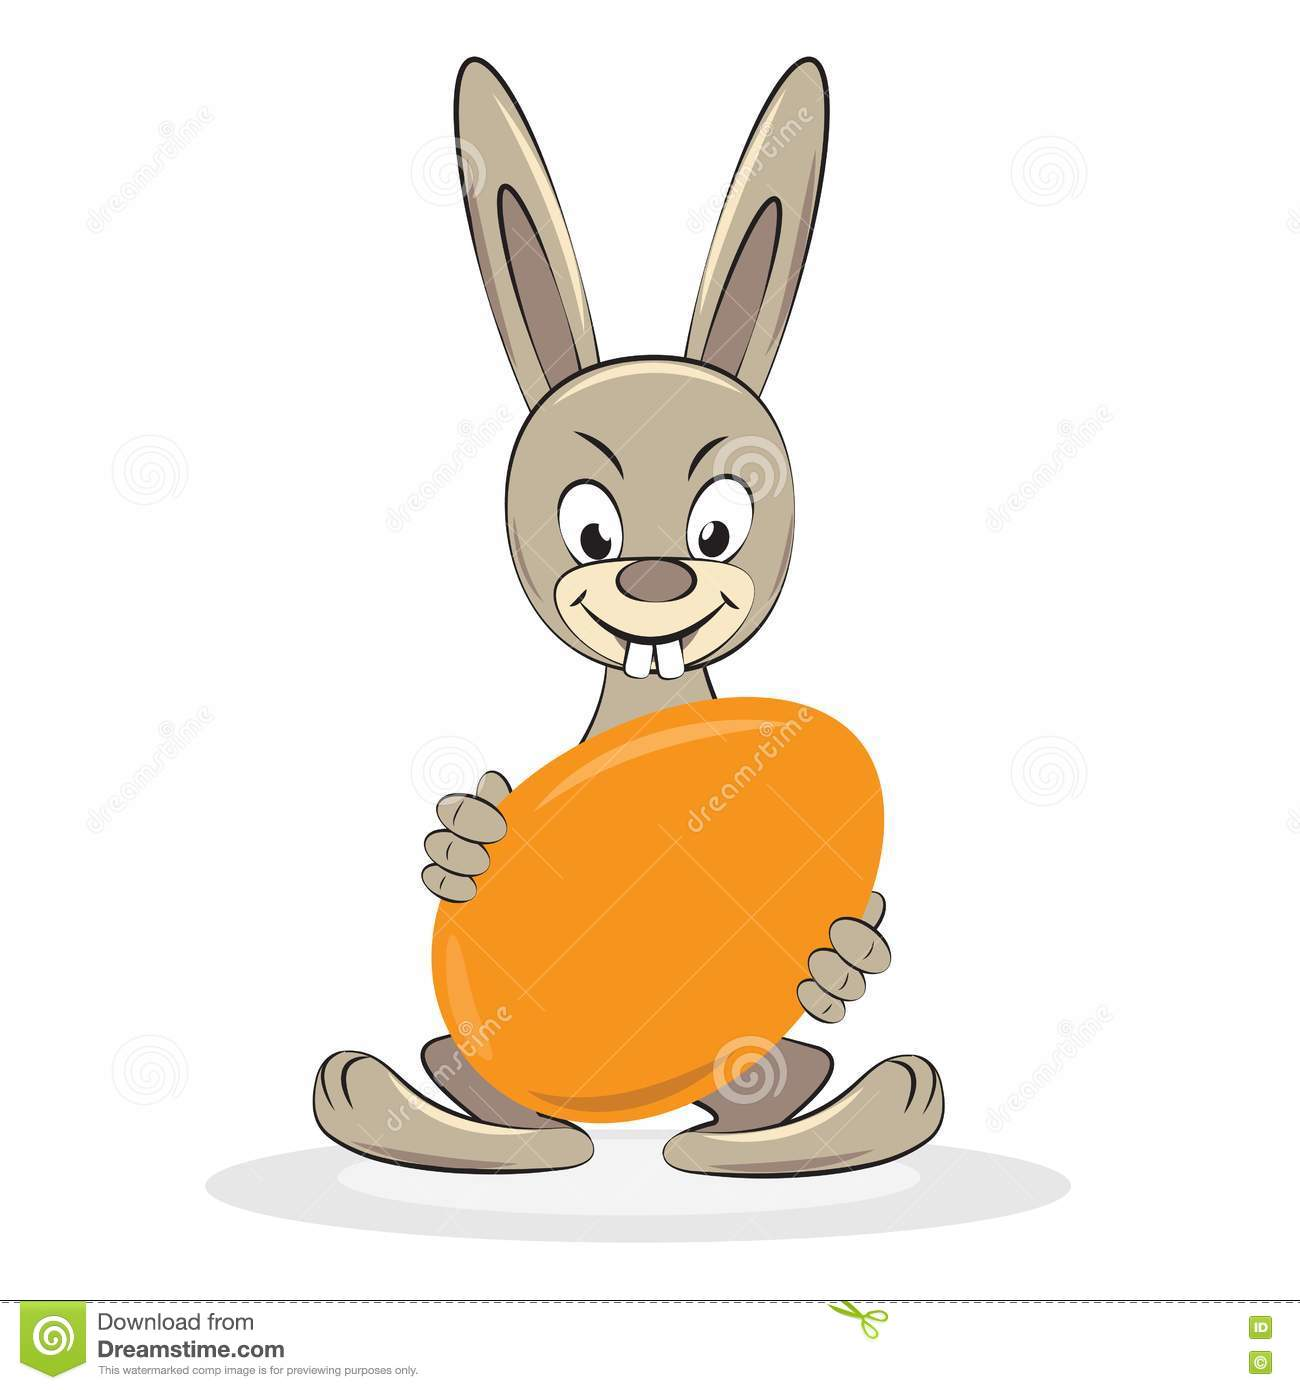 Funny Easter rabbit with egg. Vector cartoon illustration.